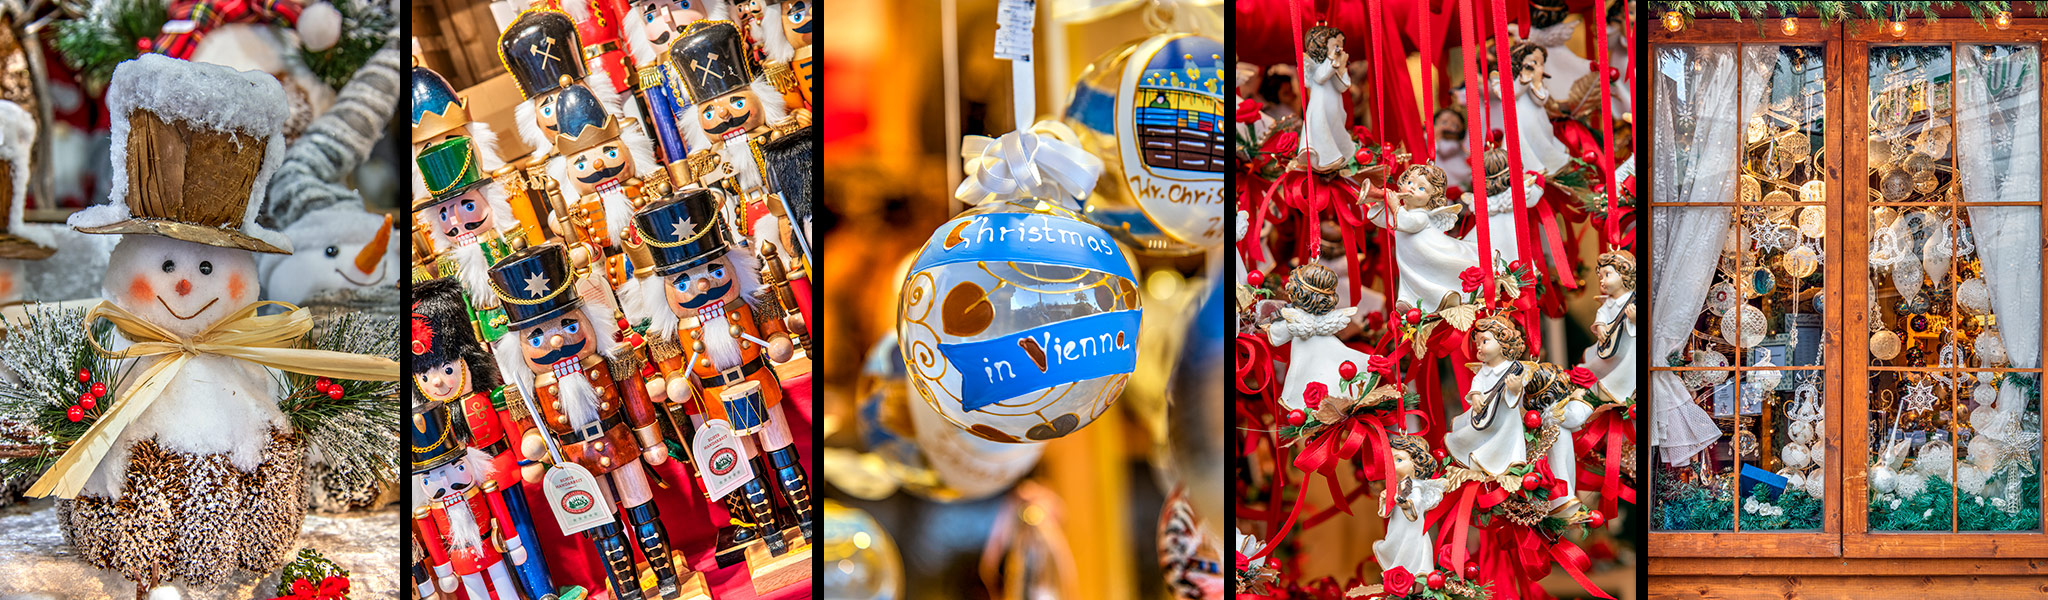 Shooting Christmas Markets in Vienna